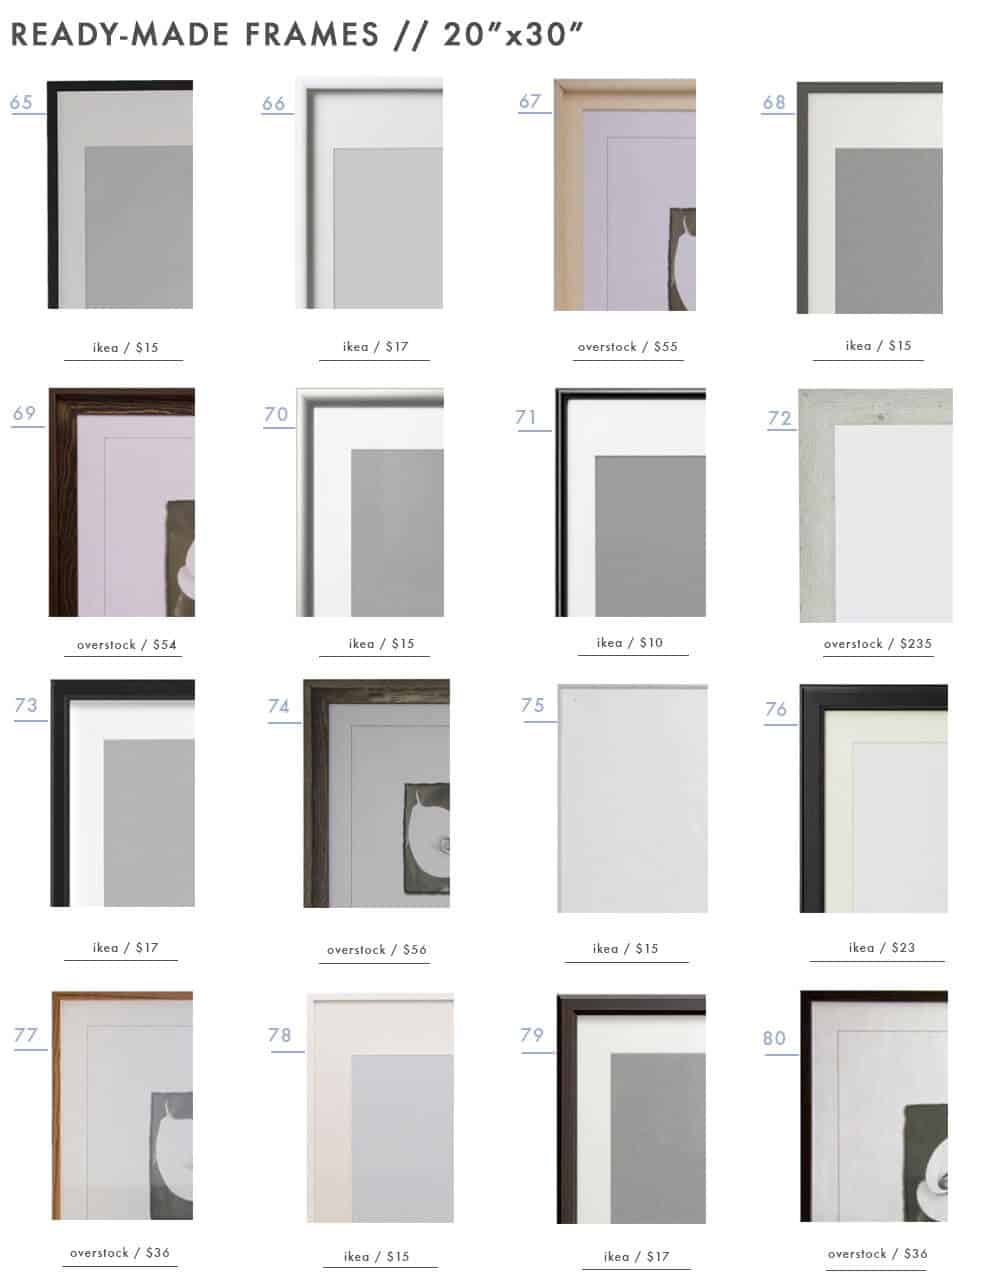 gallery-frames-ready-made-picture-photo-frames-emily-henderson-design-roundup-20x30